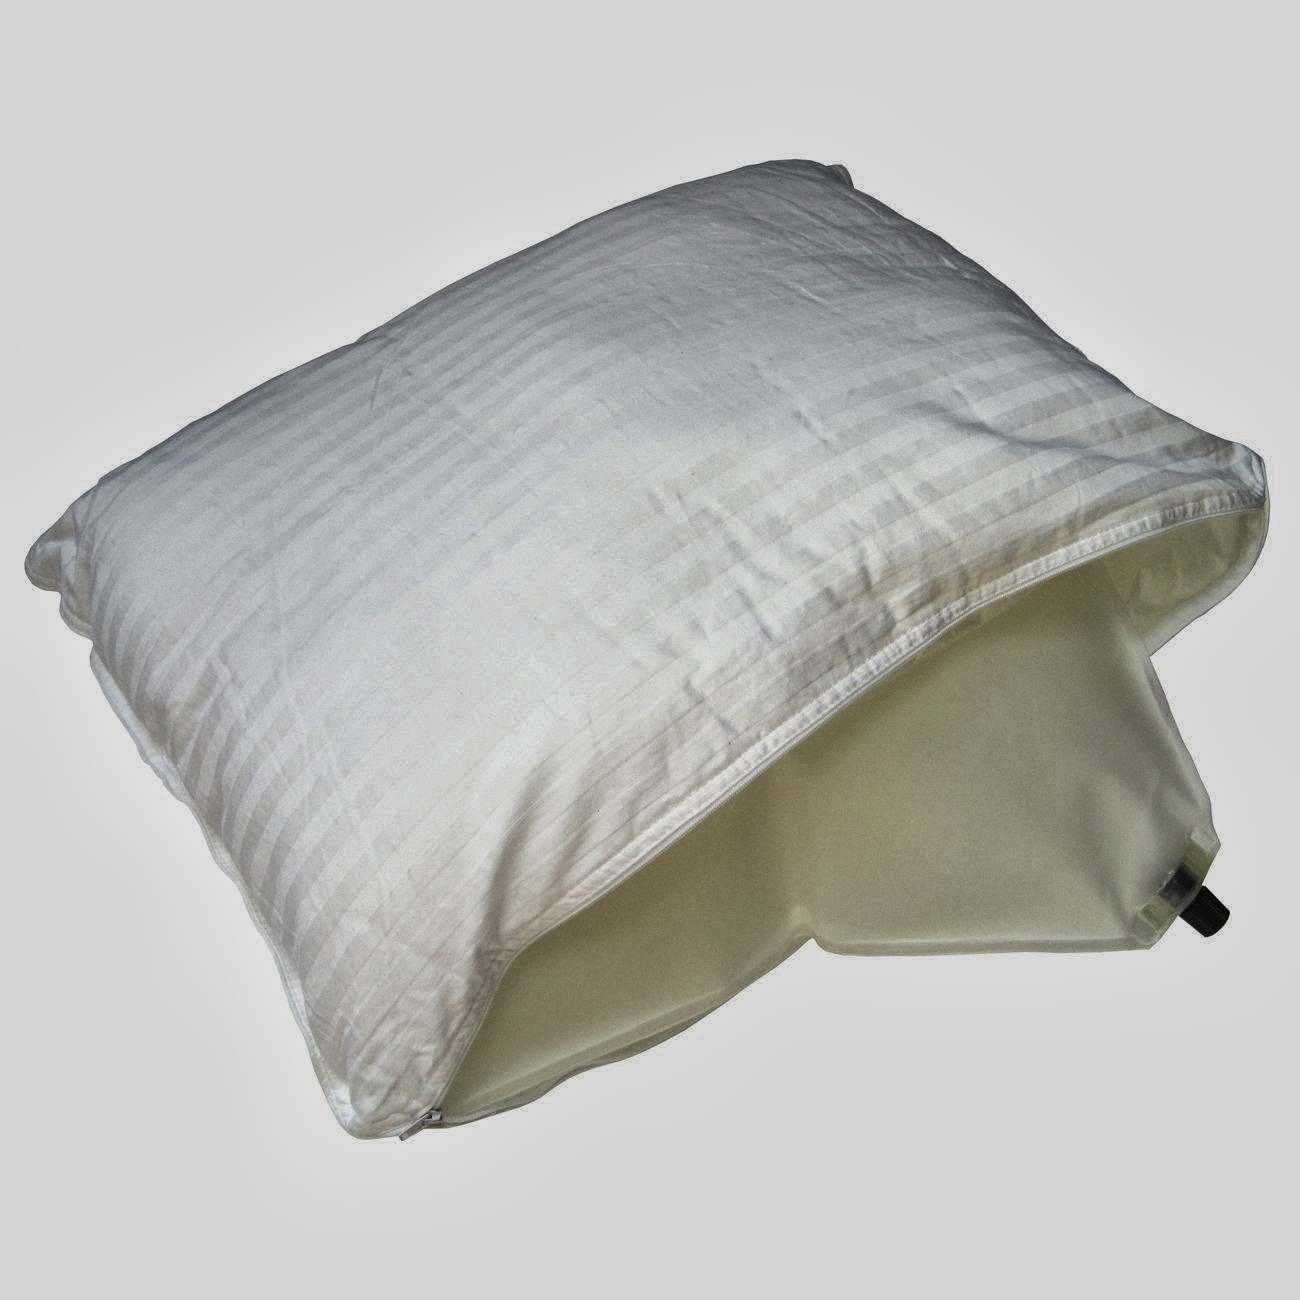 Bless Their Hearts Mom: Product Review: QiPillow Orthopedic Pillow